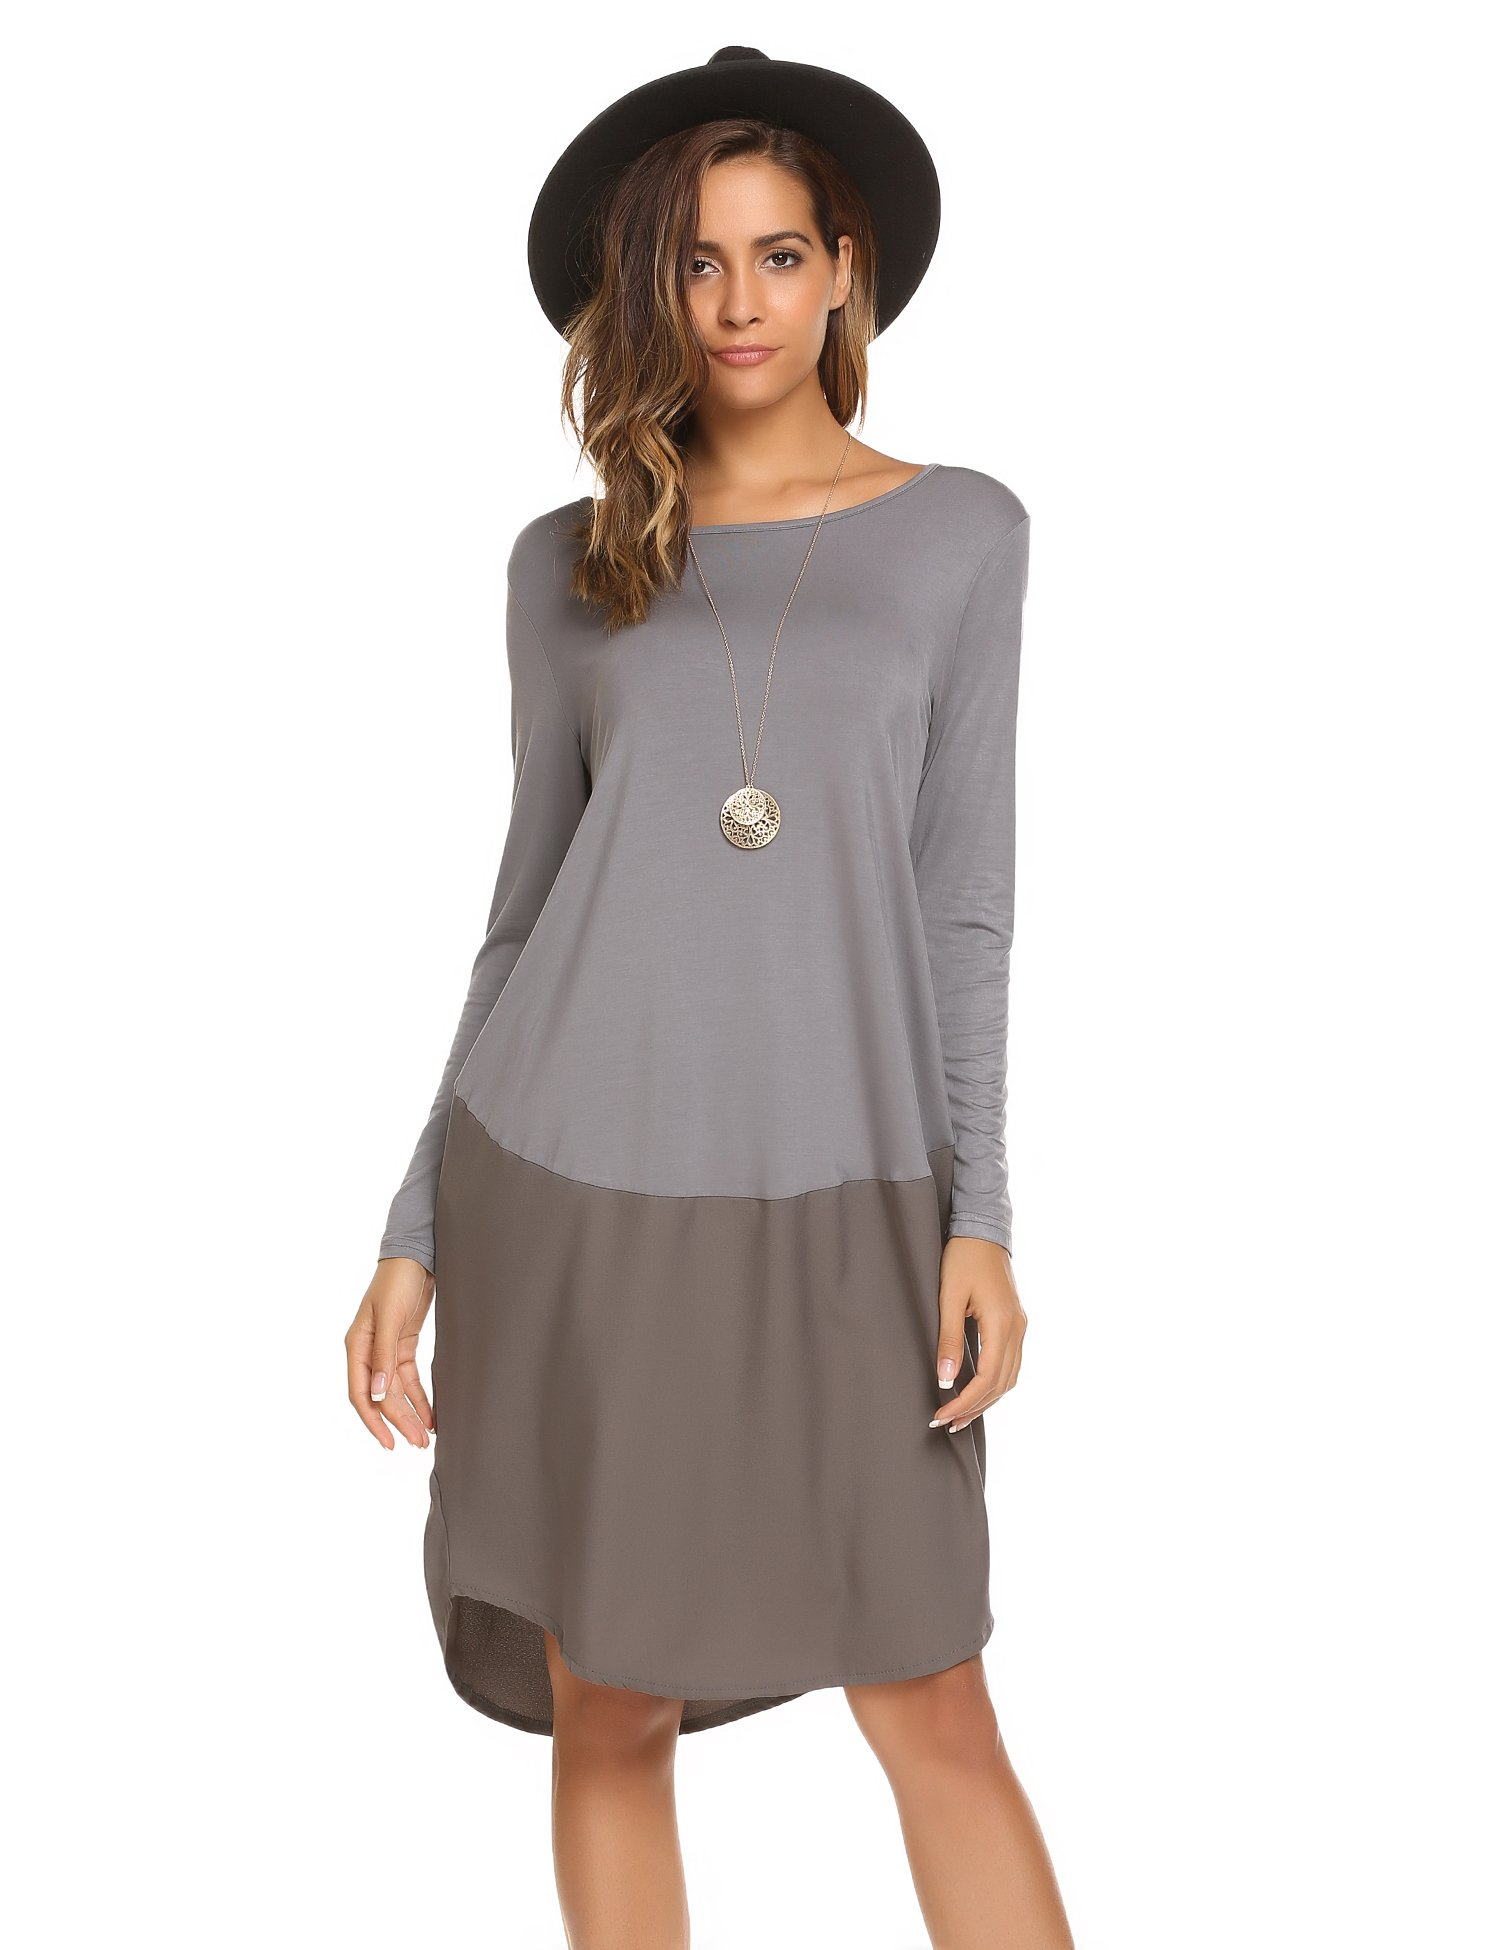 unibelle Ladies Wear to Work Casual Business Formal Dress Shirt (Grey, XX-Large)